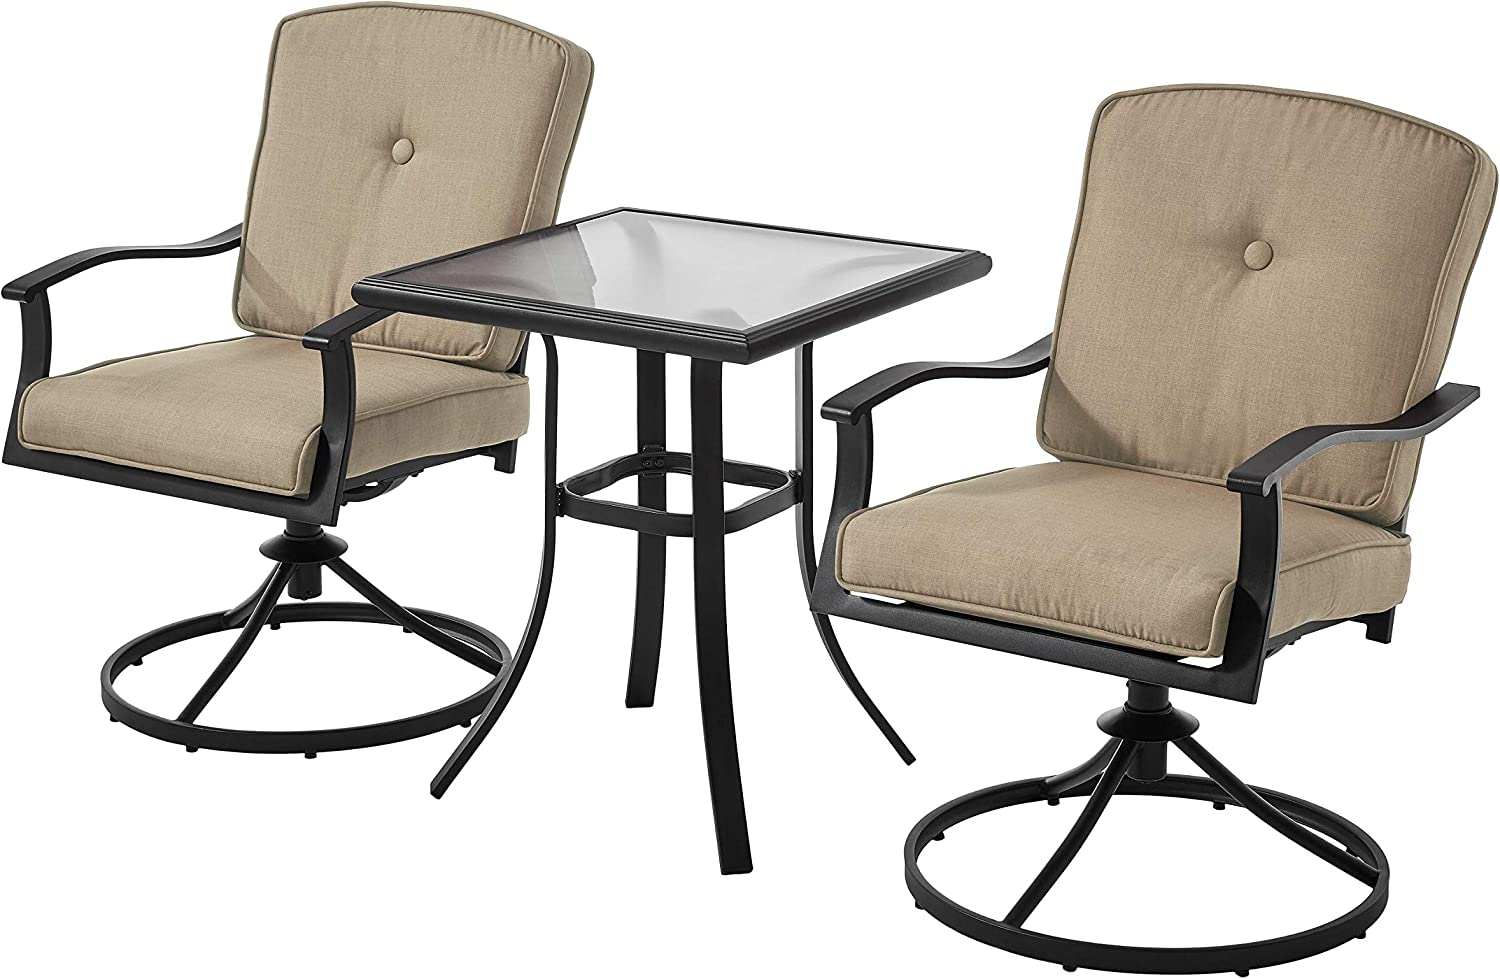 Mainstay' Patio Bistro Set Seats Outdo ! Super beauty product restock quality top! Swivel Chairs All items free shipping Cushioned 2